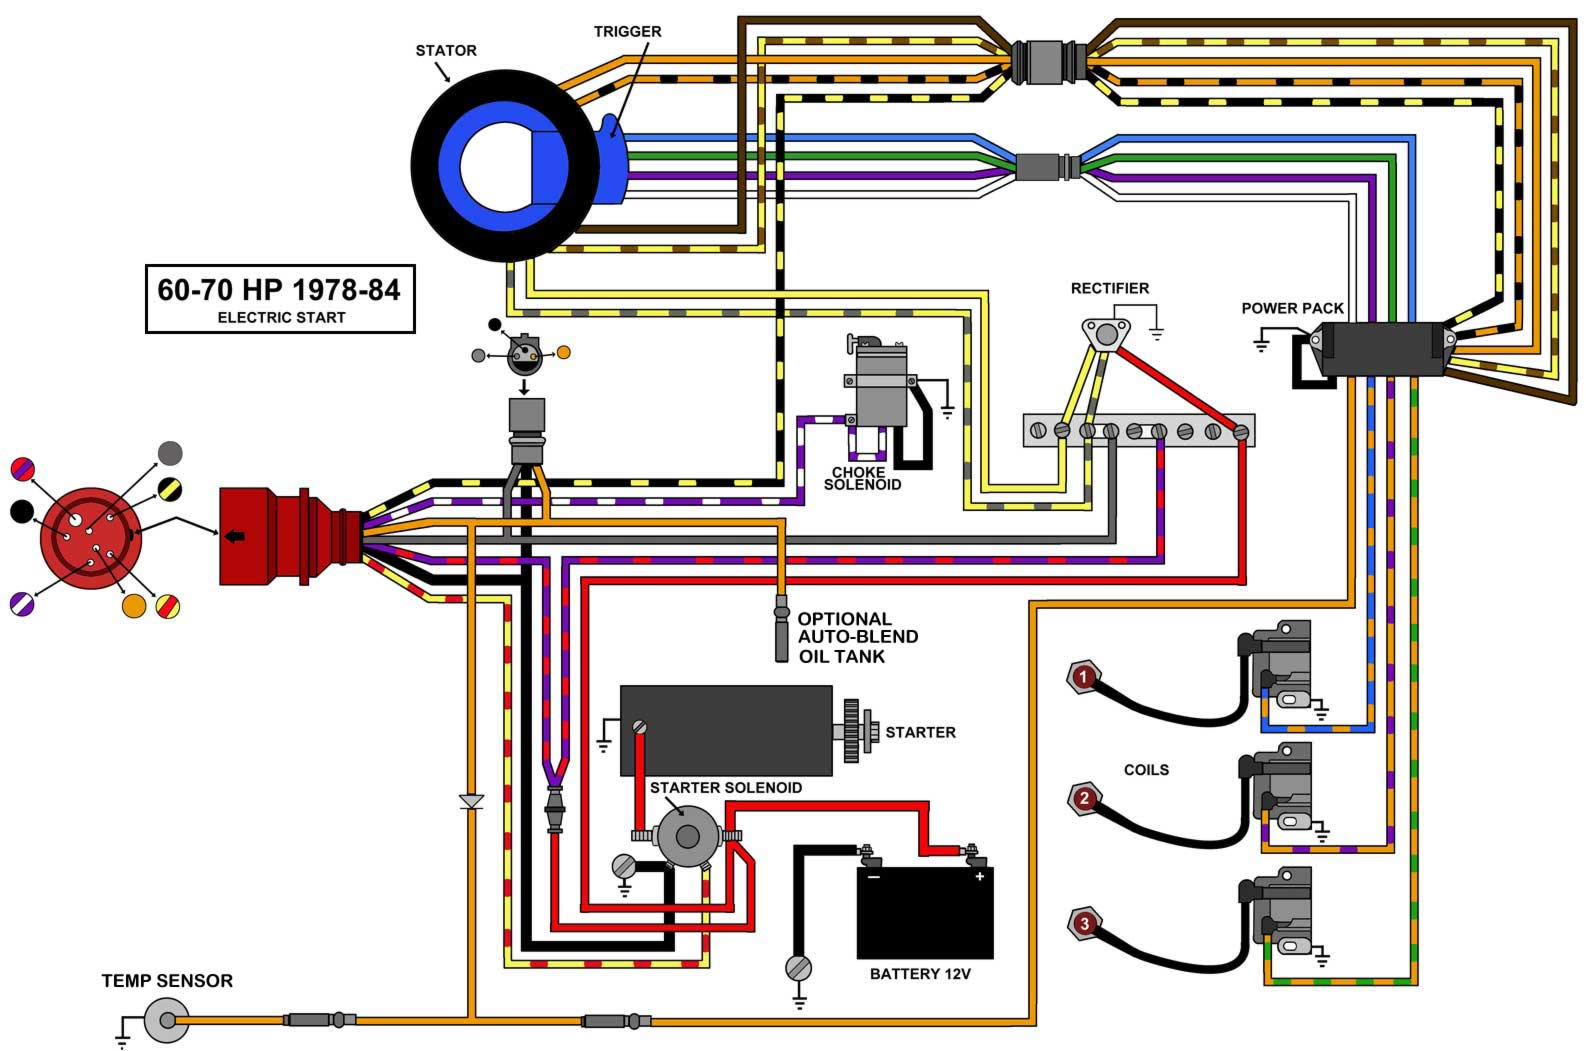 35 Hp Johnson 3 Cyl Wiring Diagram FULL HD Version Wiring Diagram - LUNG- DIAGRAM.NEWROOF.FRDiagram Database And Images